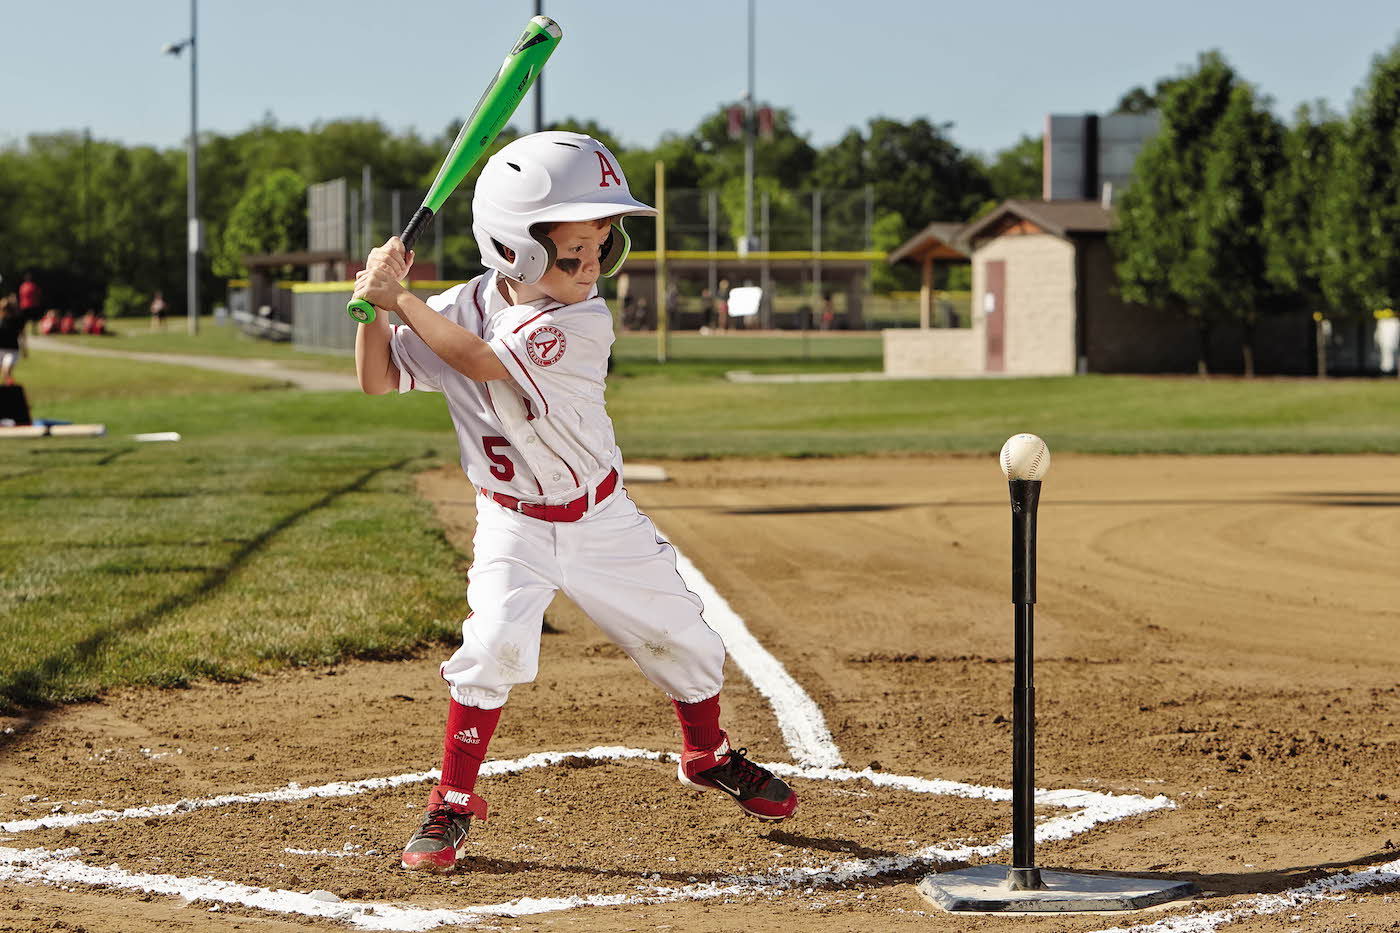 Batting tee drills for baseball